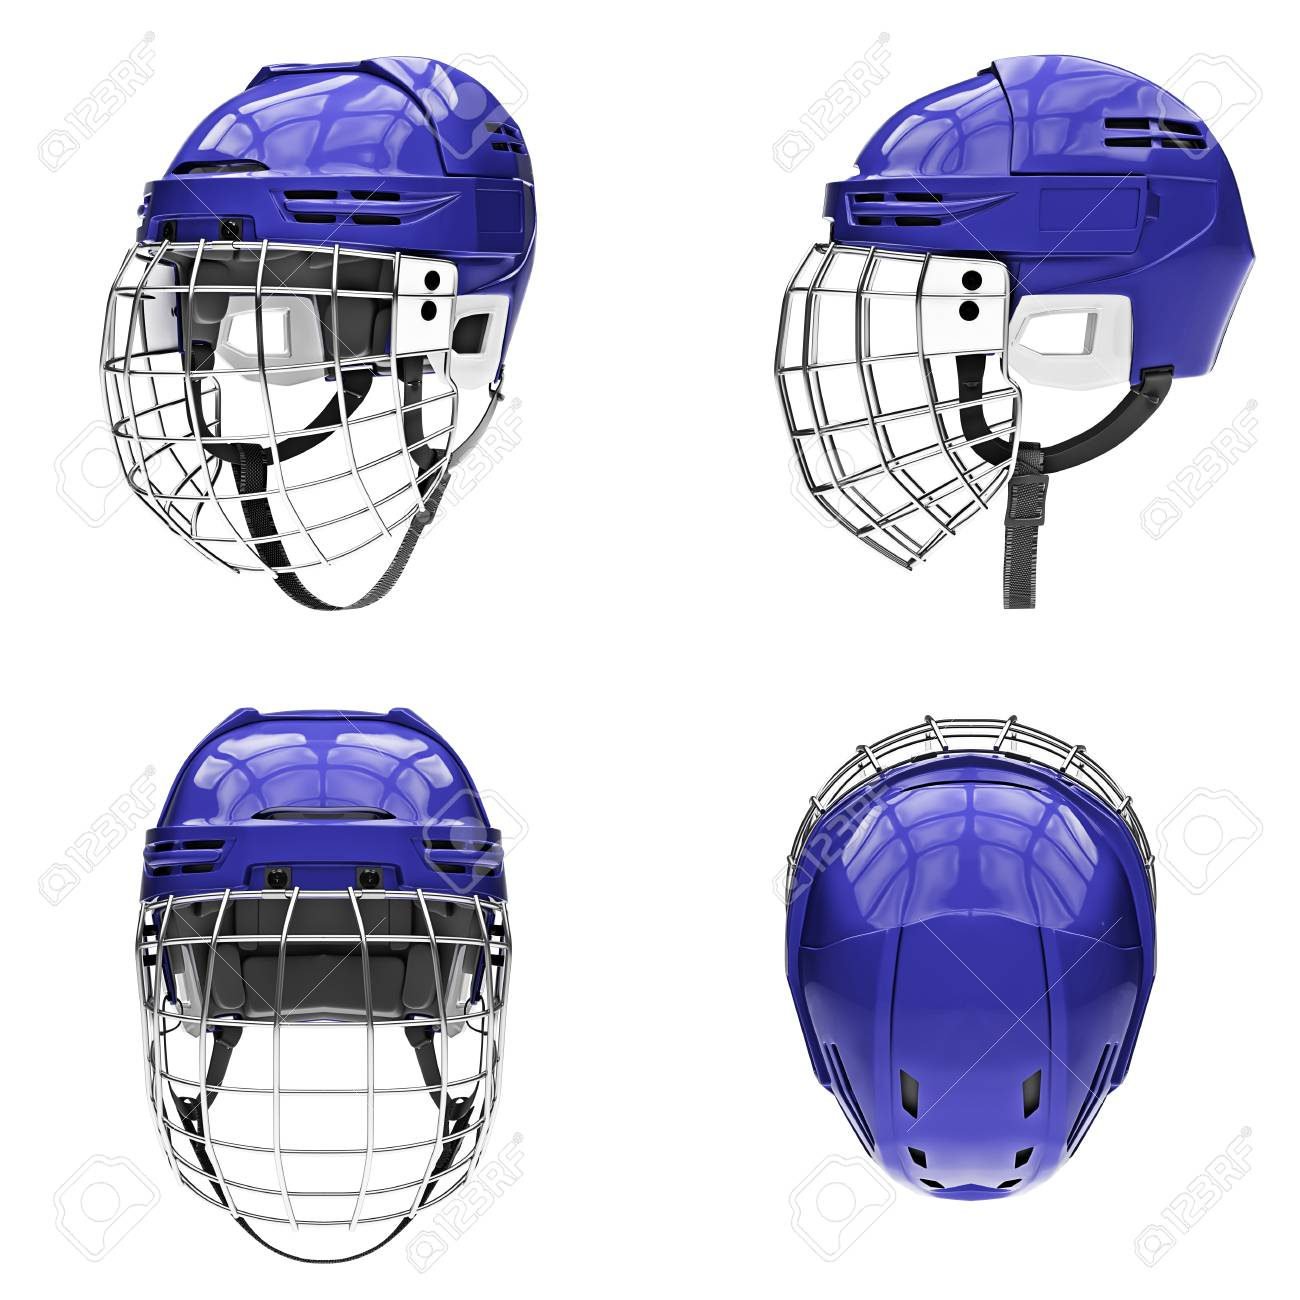 Set Of Classic Ice Hockey Helmets With Metal Facemask All Side